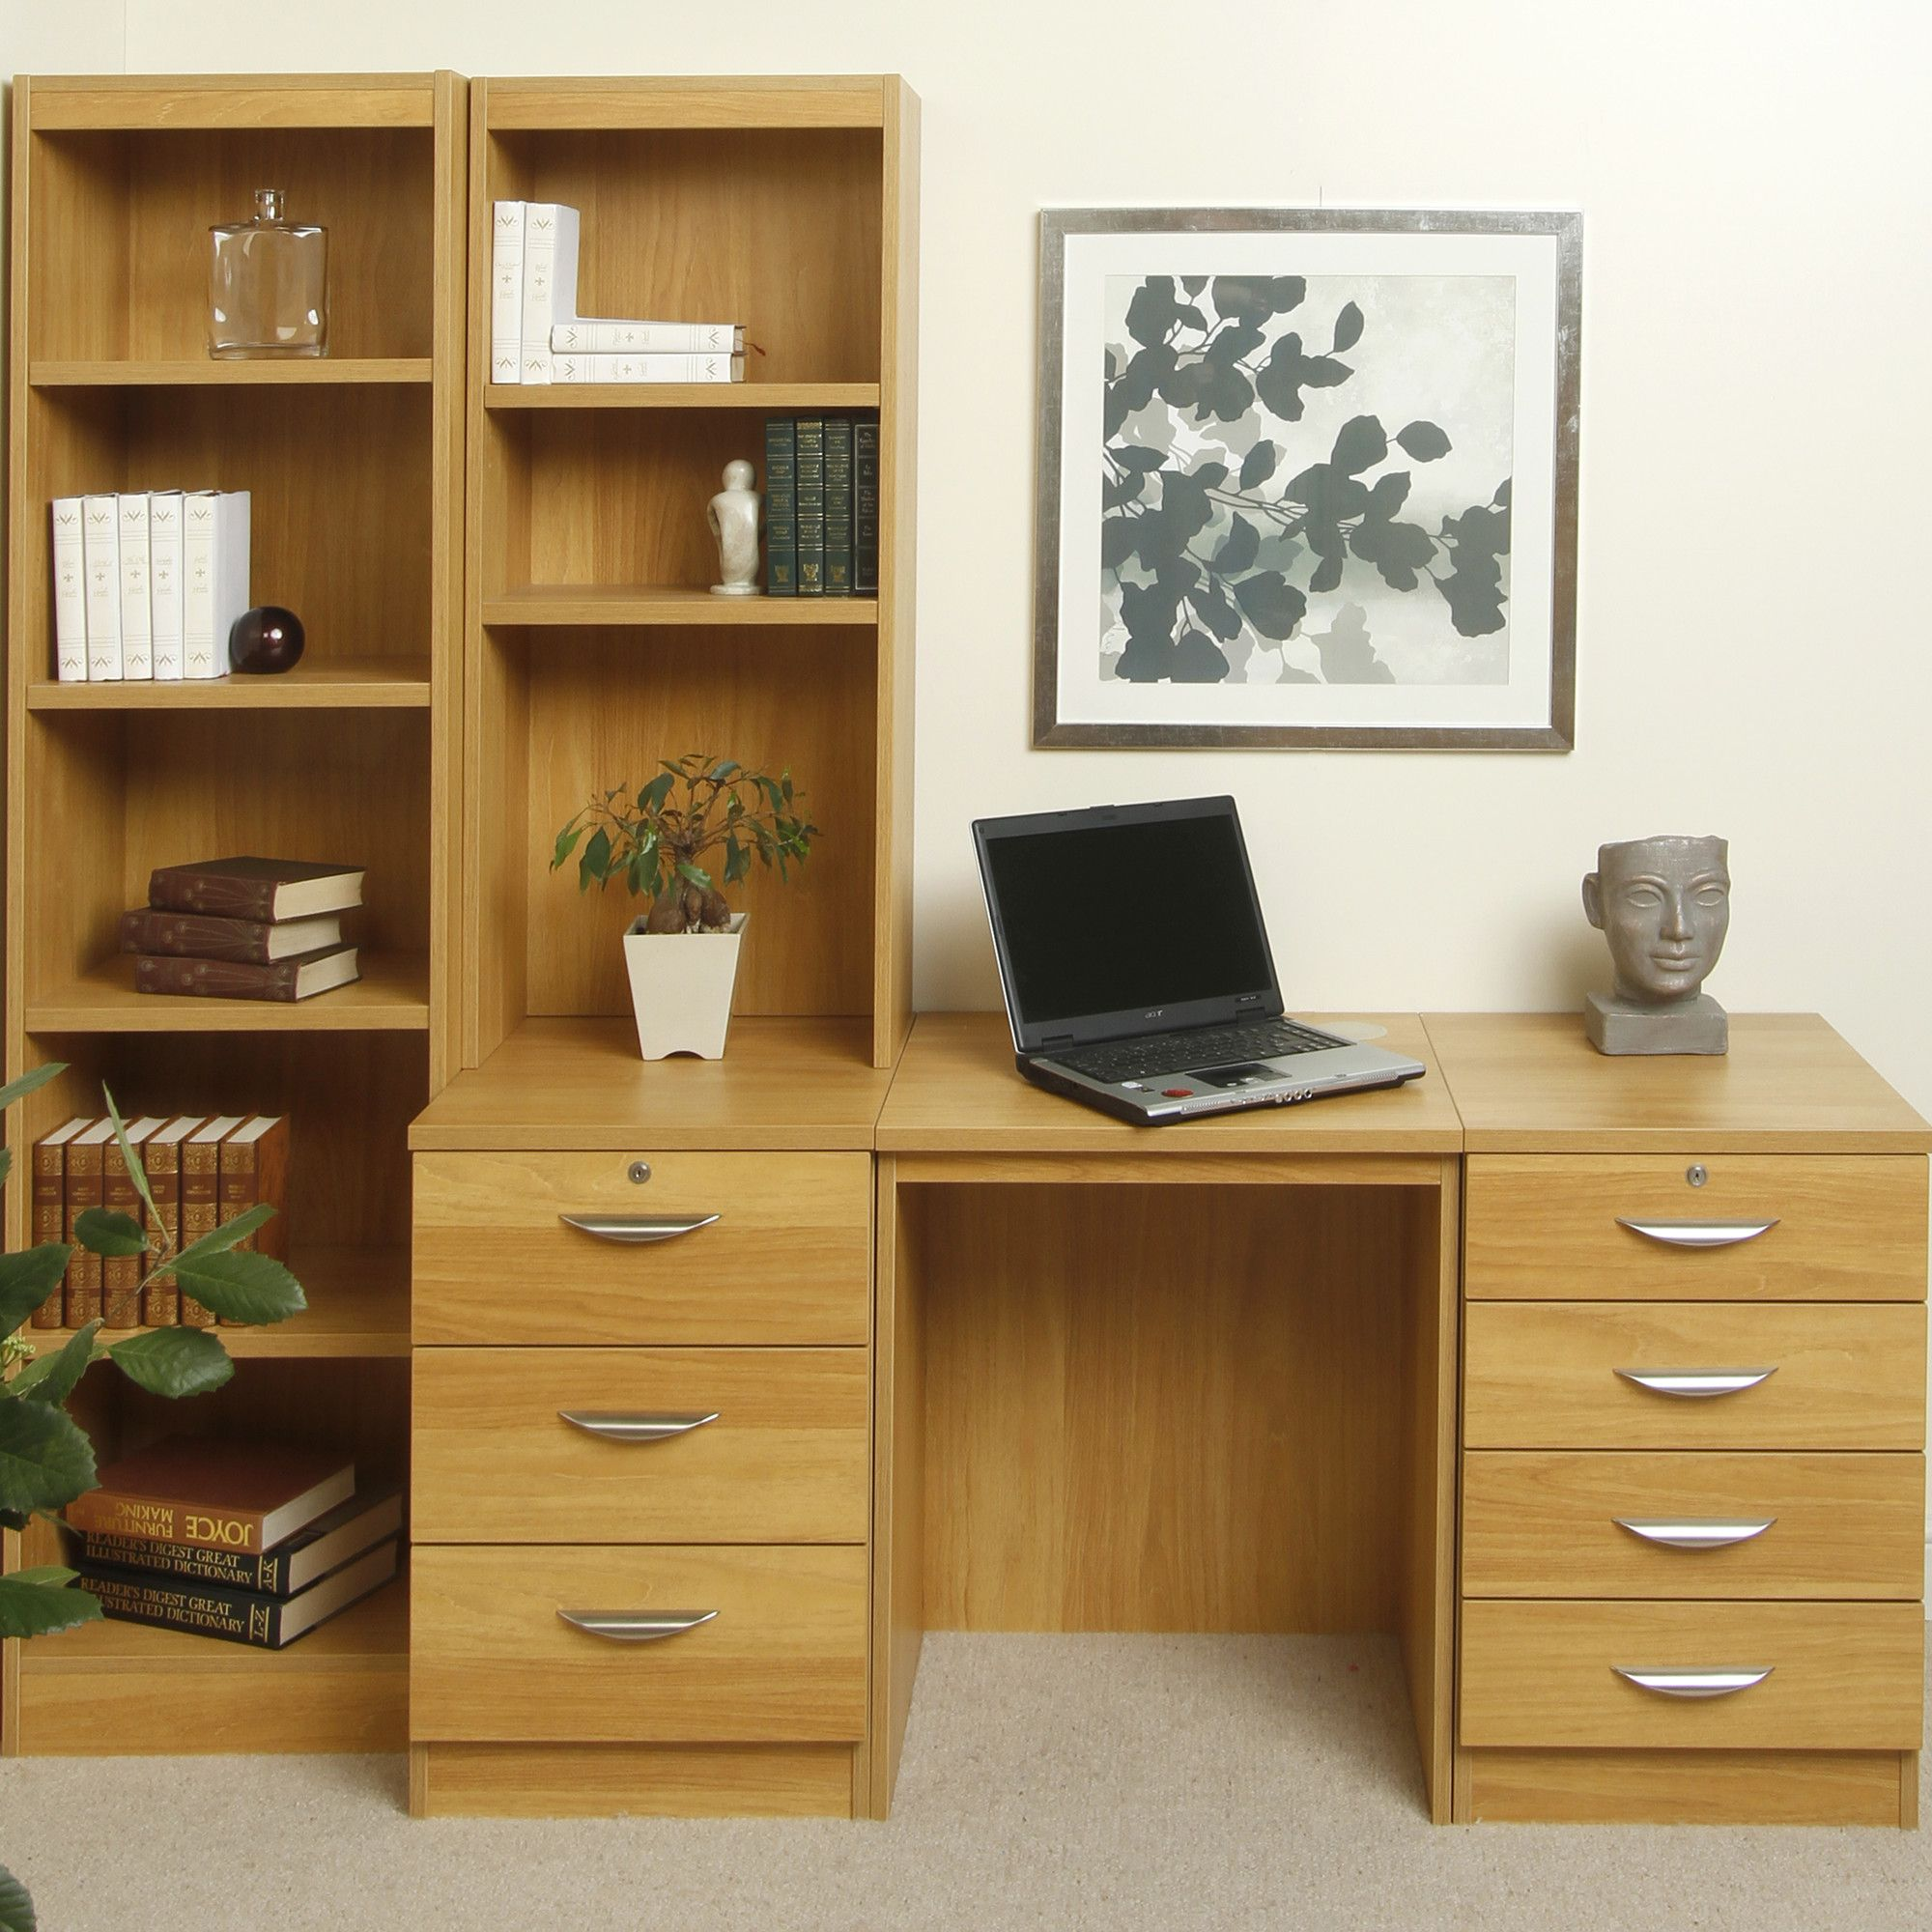 Enduro 1050Home Office Desk / Workstation with Bookshelves - Beech at Tesco Direct